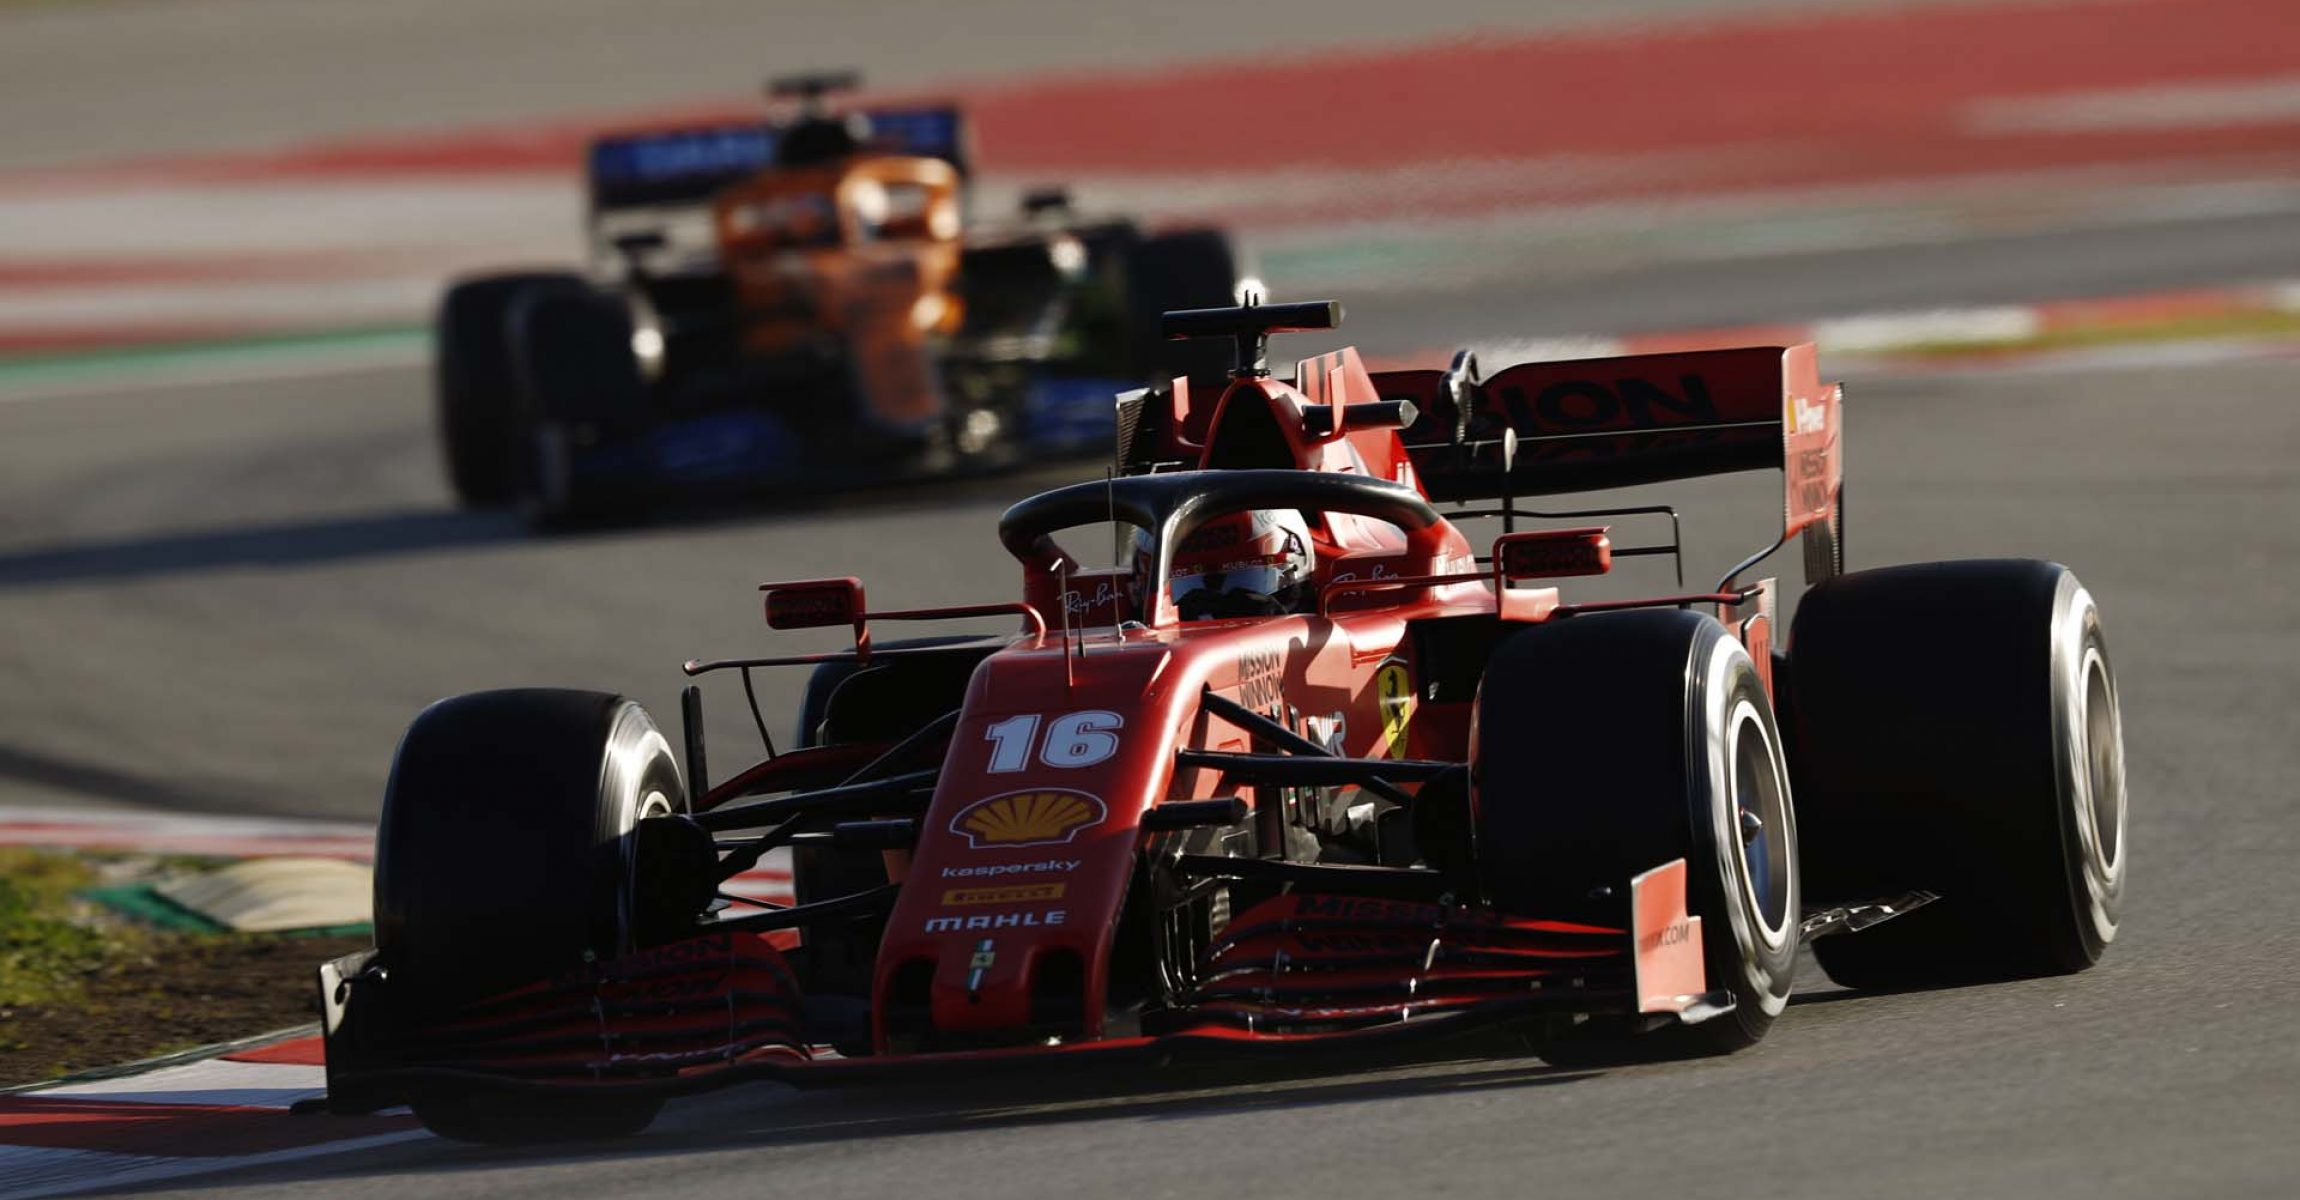 CIRCUIT DE BARCELONA-CATALUNYA, SPAIN - FEBRUARY 28: Charles Leclerc, Ferrari SF1000 during the Barcelona February testing II at Circuit de Barcelona-Catalunya on February 28, 2020 in Circuit de Barcelona-Catalunya, Spain. (Photo by Glenn Dunbar / LAT Images)